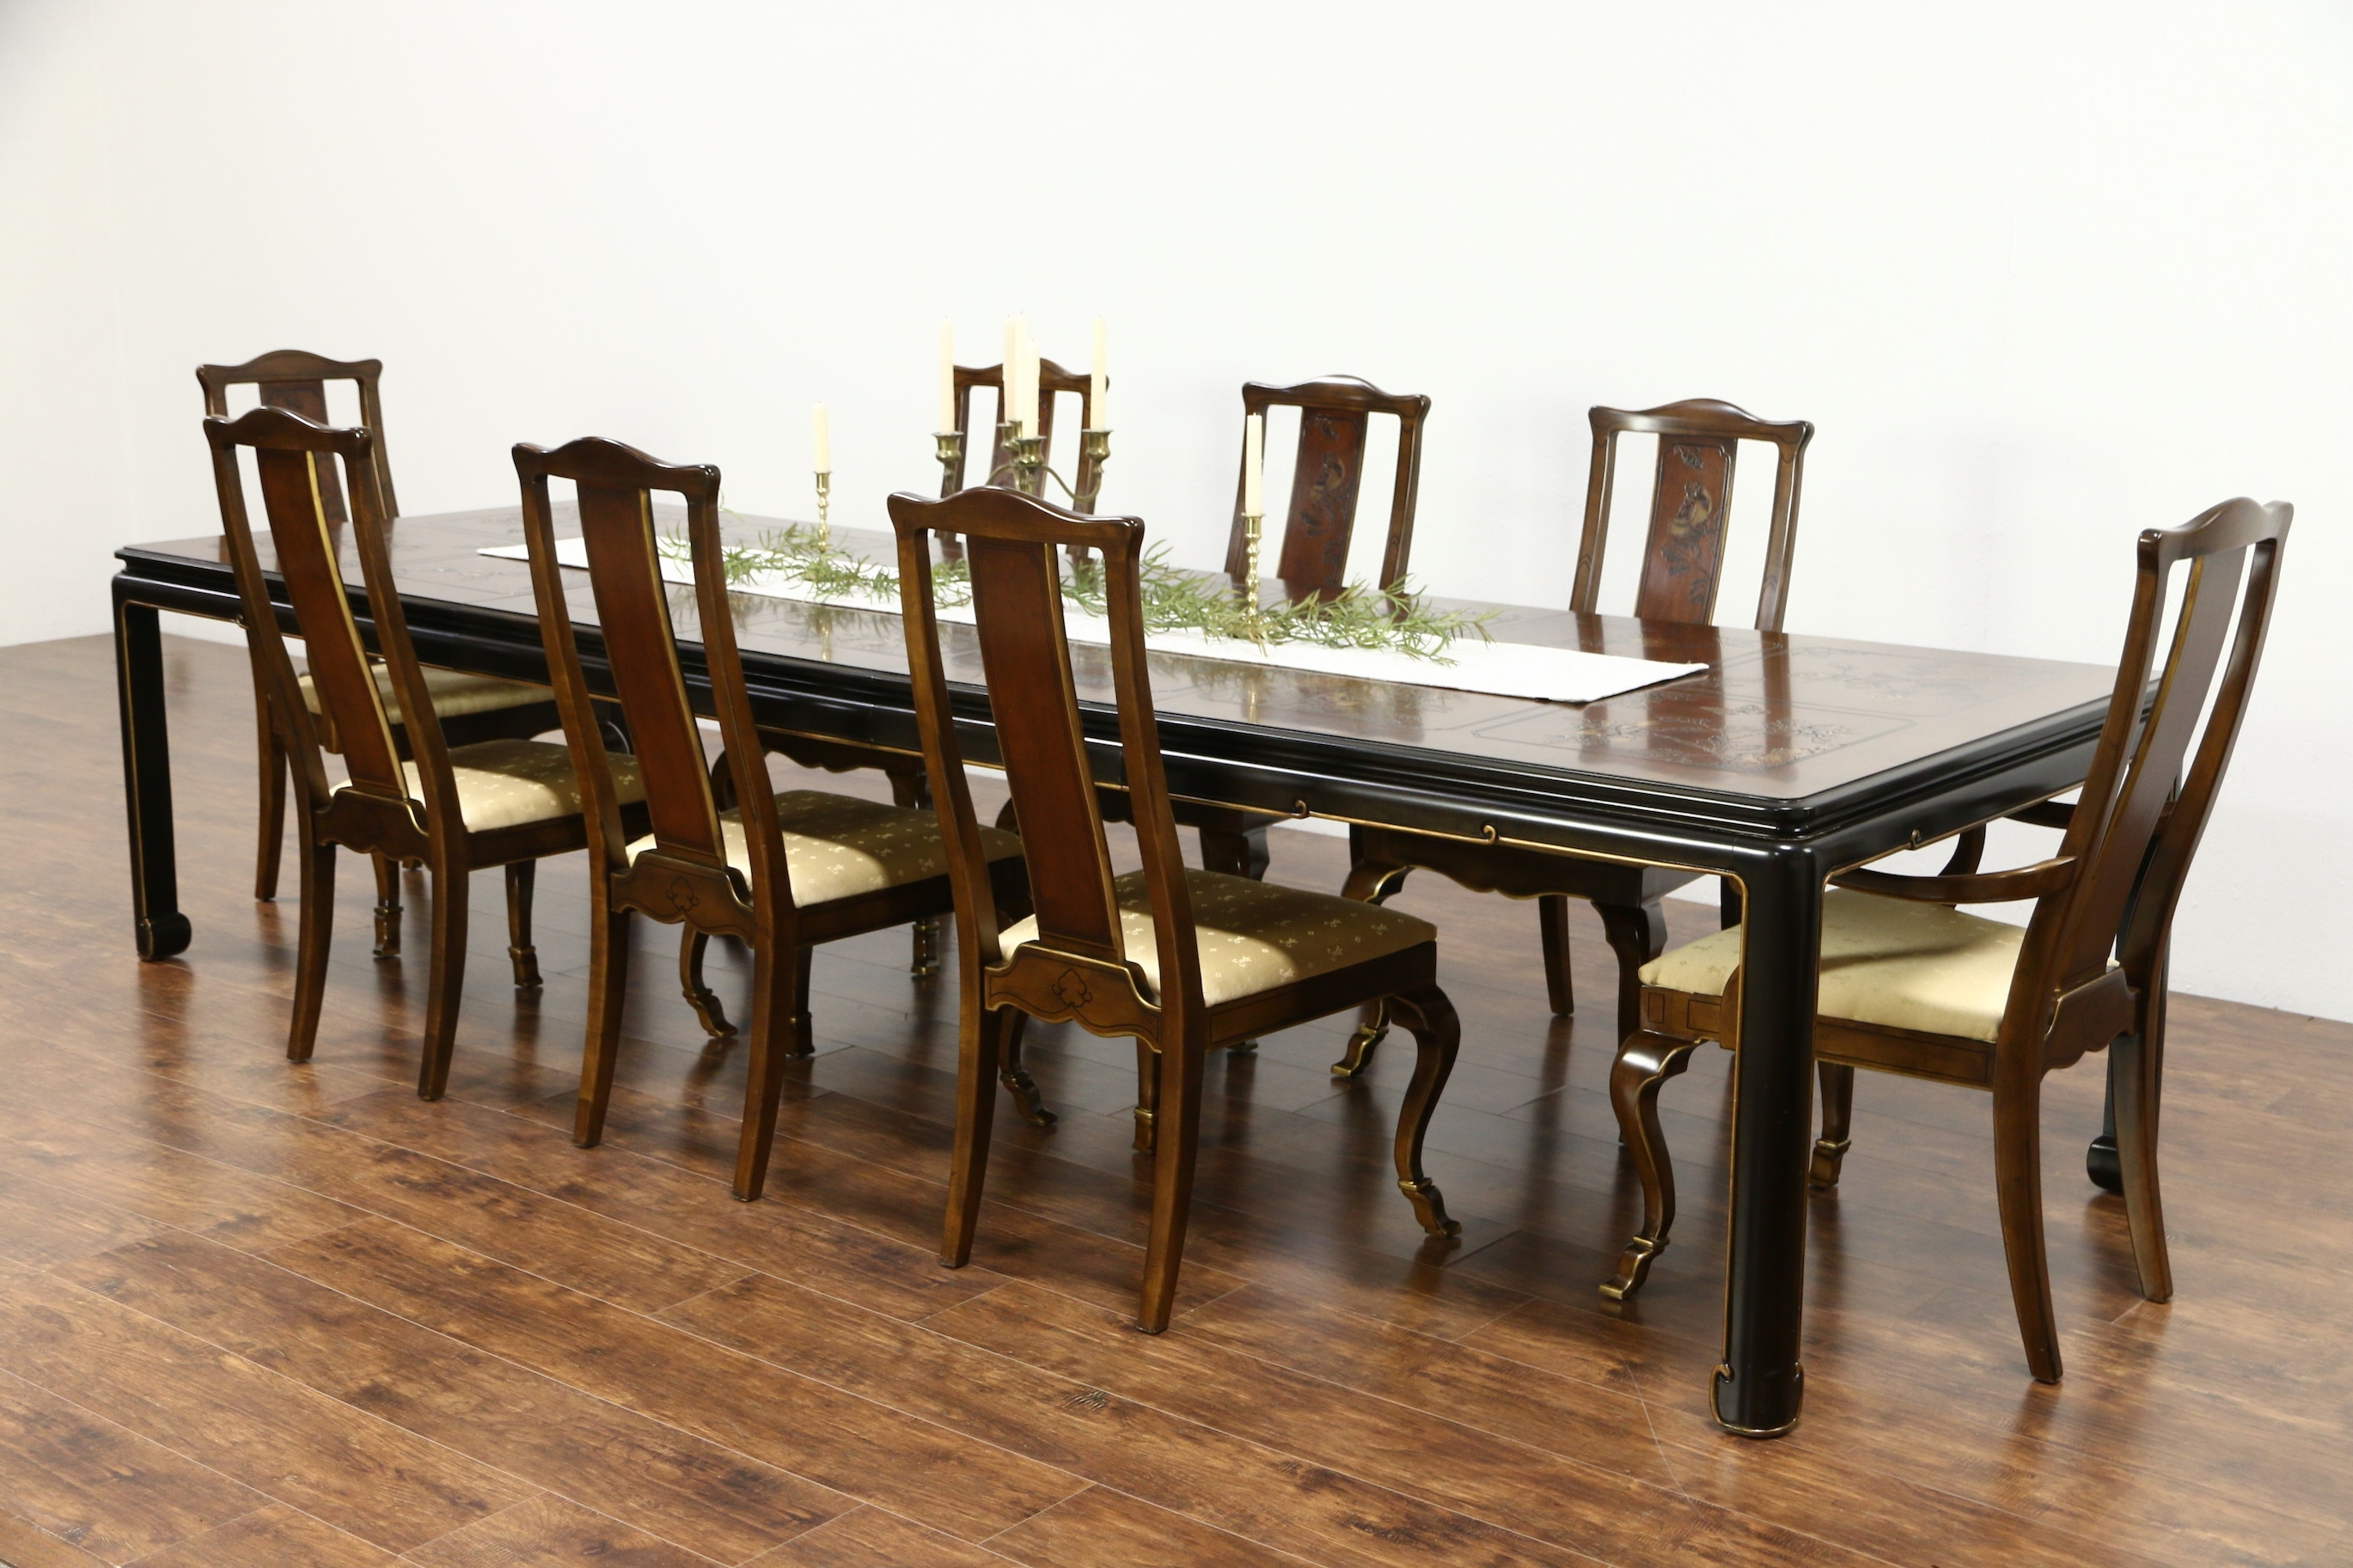 8 Chairs Dining Sets inside Trendy Dining Room Table 8 Chairs - Www.cheekybeaglestudios